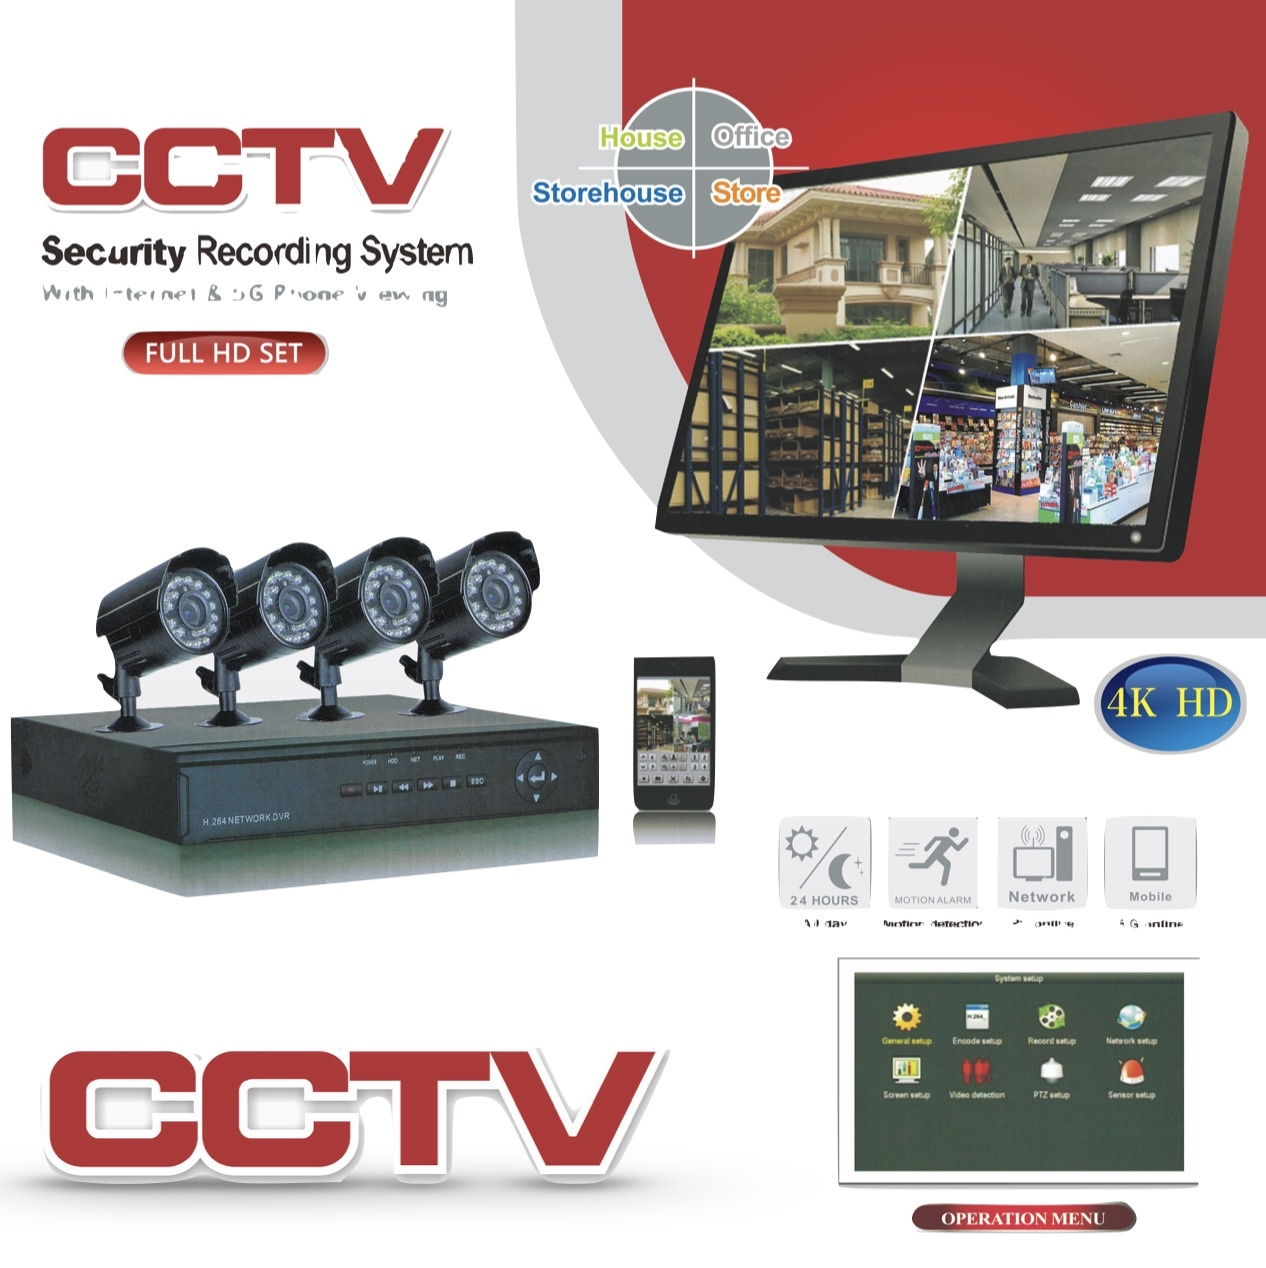 CCTV Bewakingssysteem met 4 Camera's en DVR - Bewakingscentrum